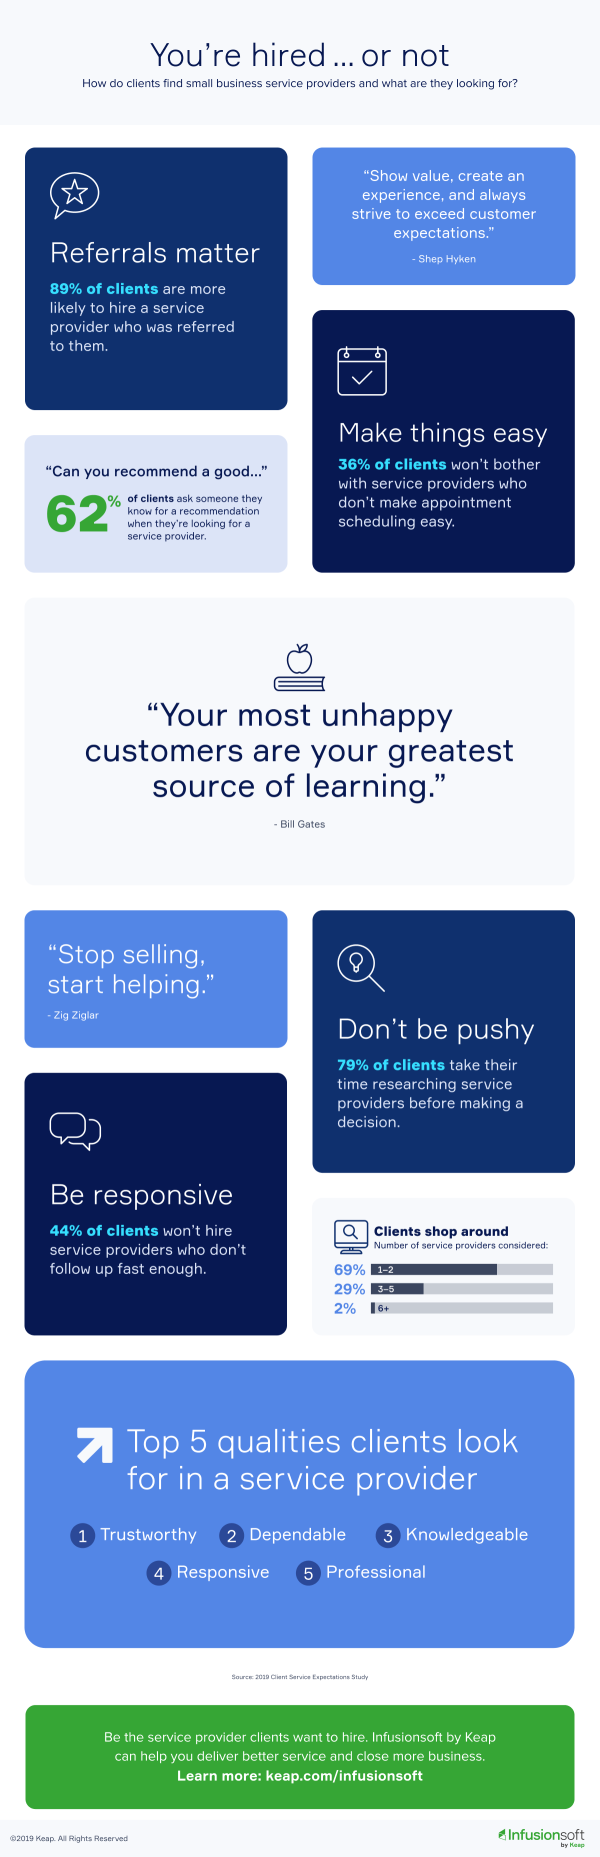 Service Business Customer Expectations - Advice From the Clients